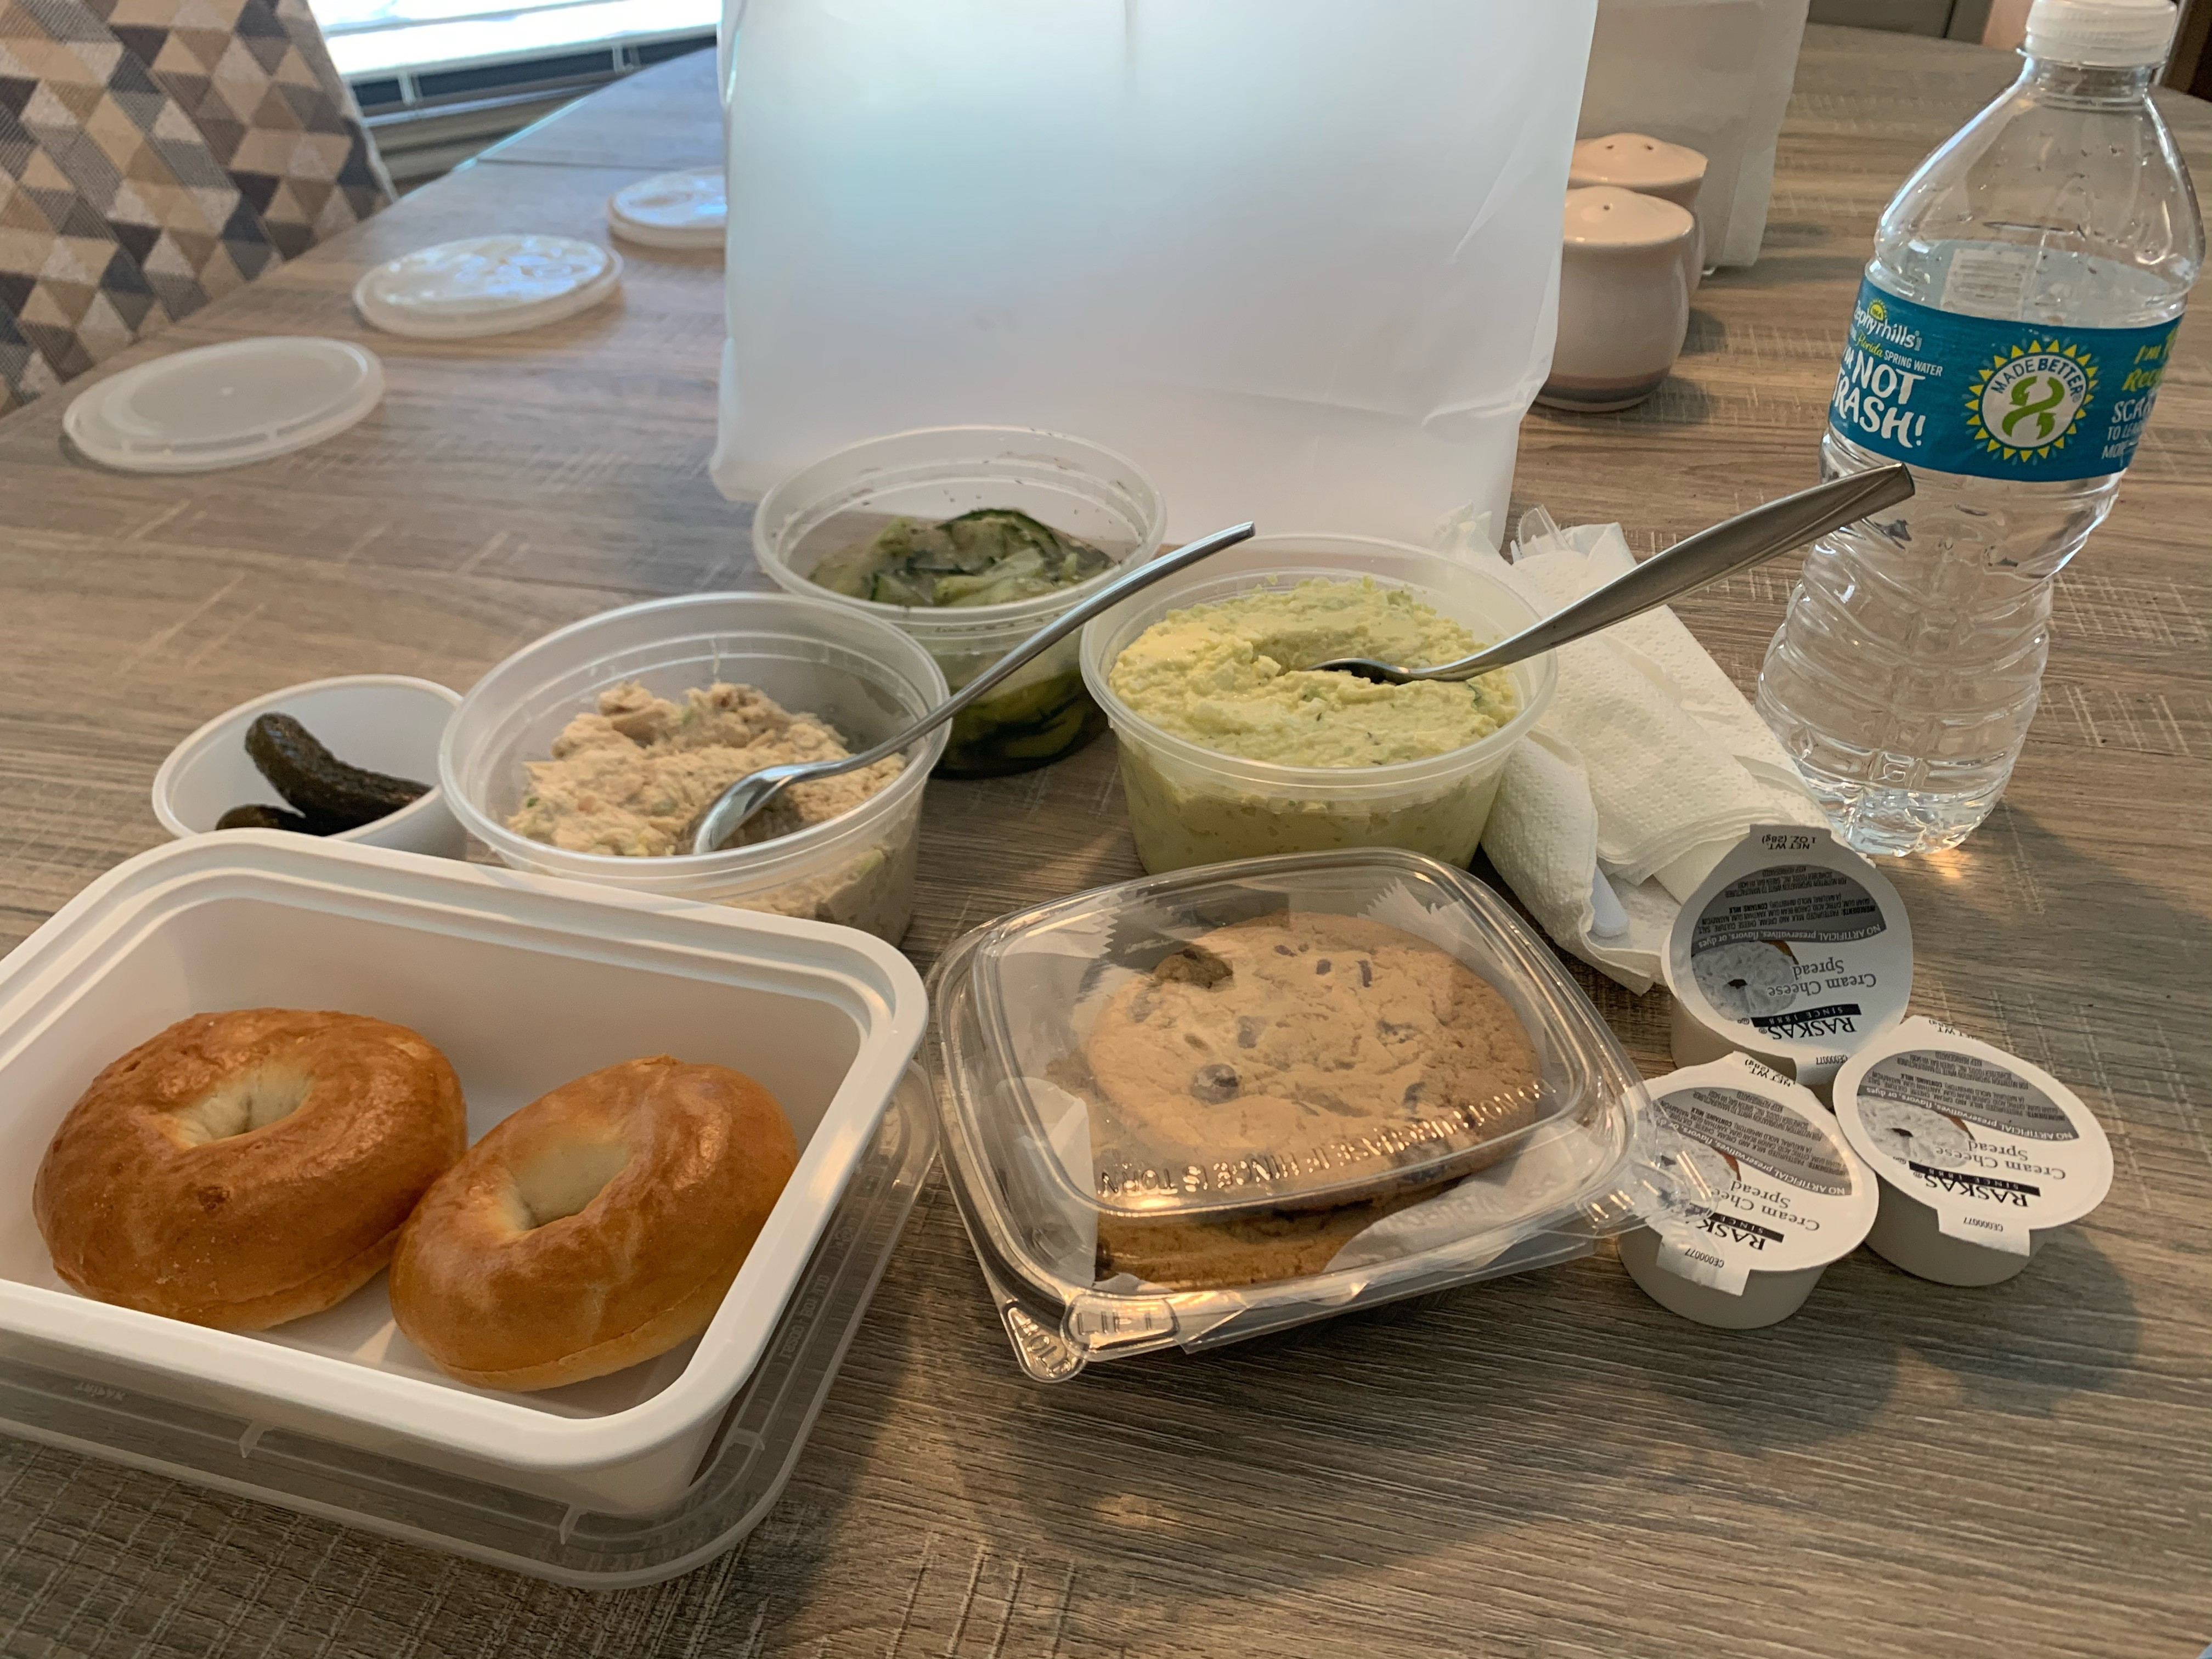 """</a>                                                                                                                                                                                       <span class=""""slider_description"""">Kiddush Lunch to Go! The next date for pick-up is Friday, 4/16!</span>                                                                                     <a href=""""https://www.cbsclearwater.org/form/kiddush-to-go-4/16/20211.html"""" class=""""slider_link""""                             target=""""_blank"""">                             Click here to reserve your lunch!                            </a>"""